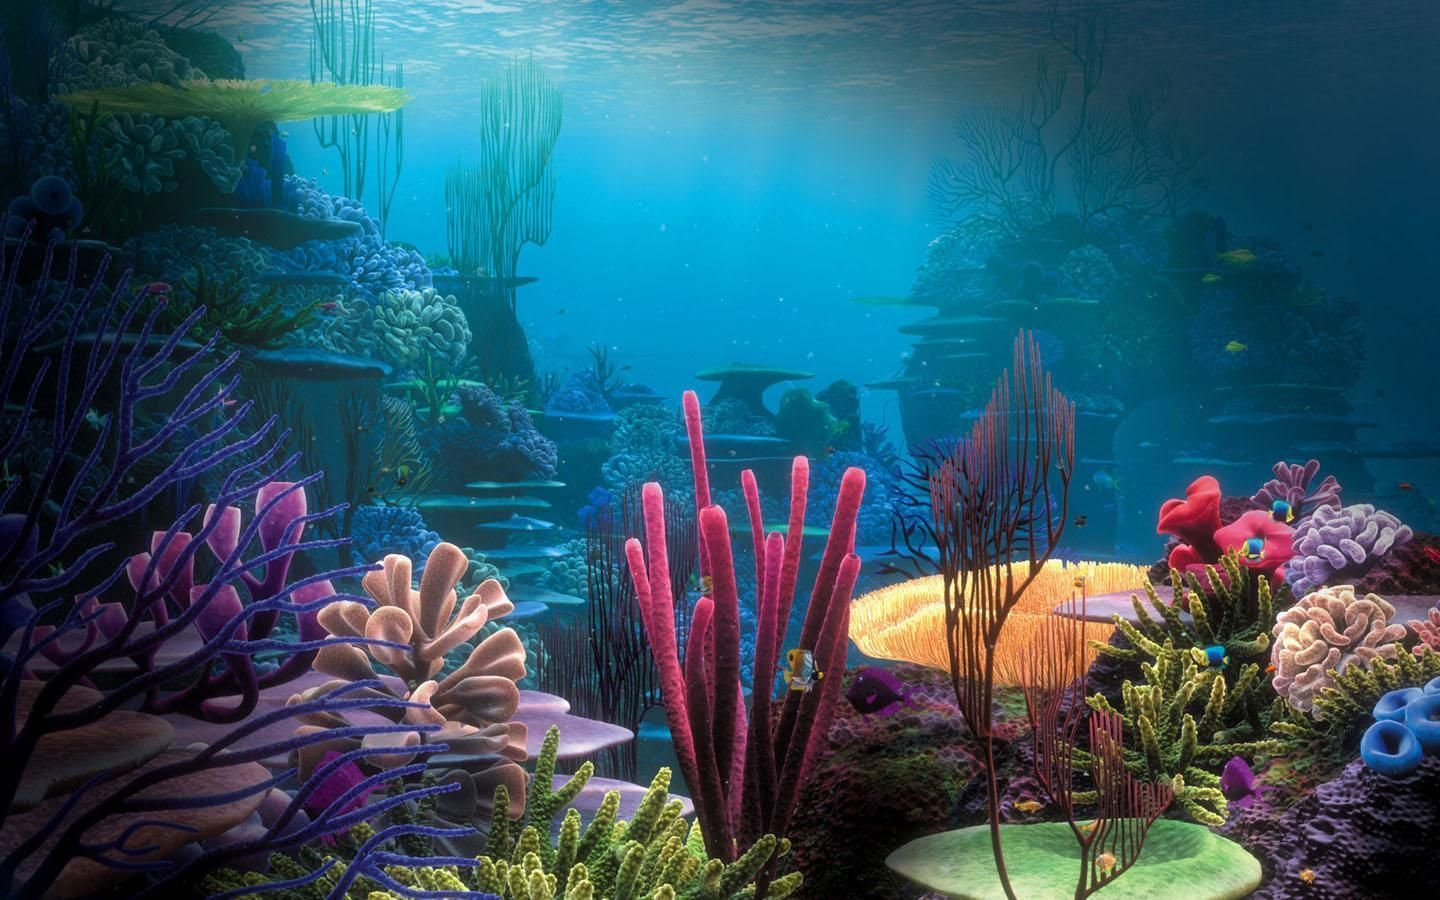 Hd Aquarium Wallpapers Top Free Hd Aquarium Backgrounds Wallpaperaccess